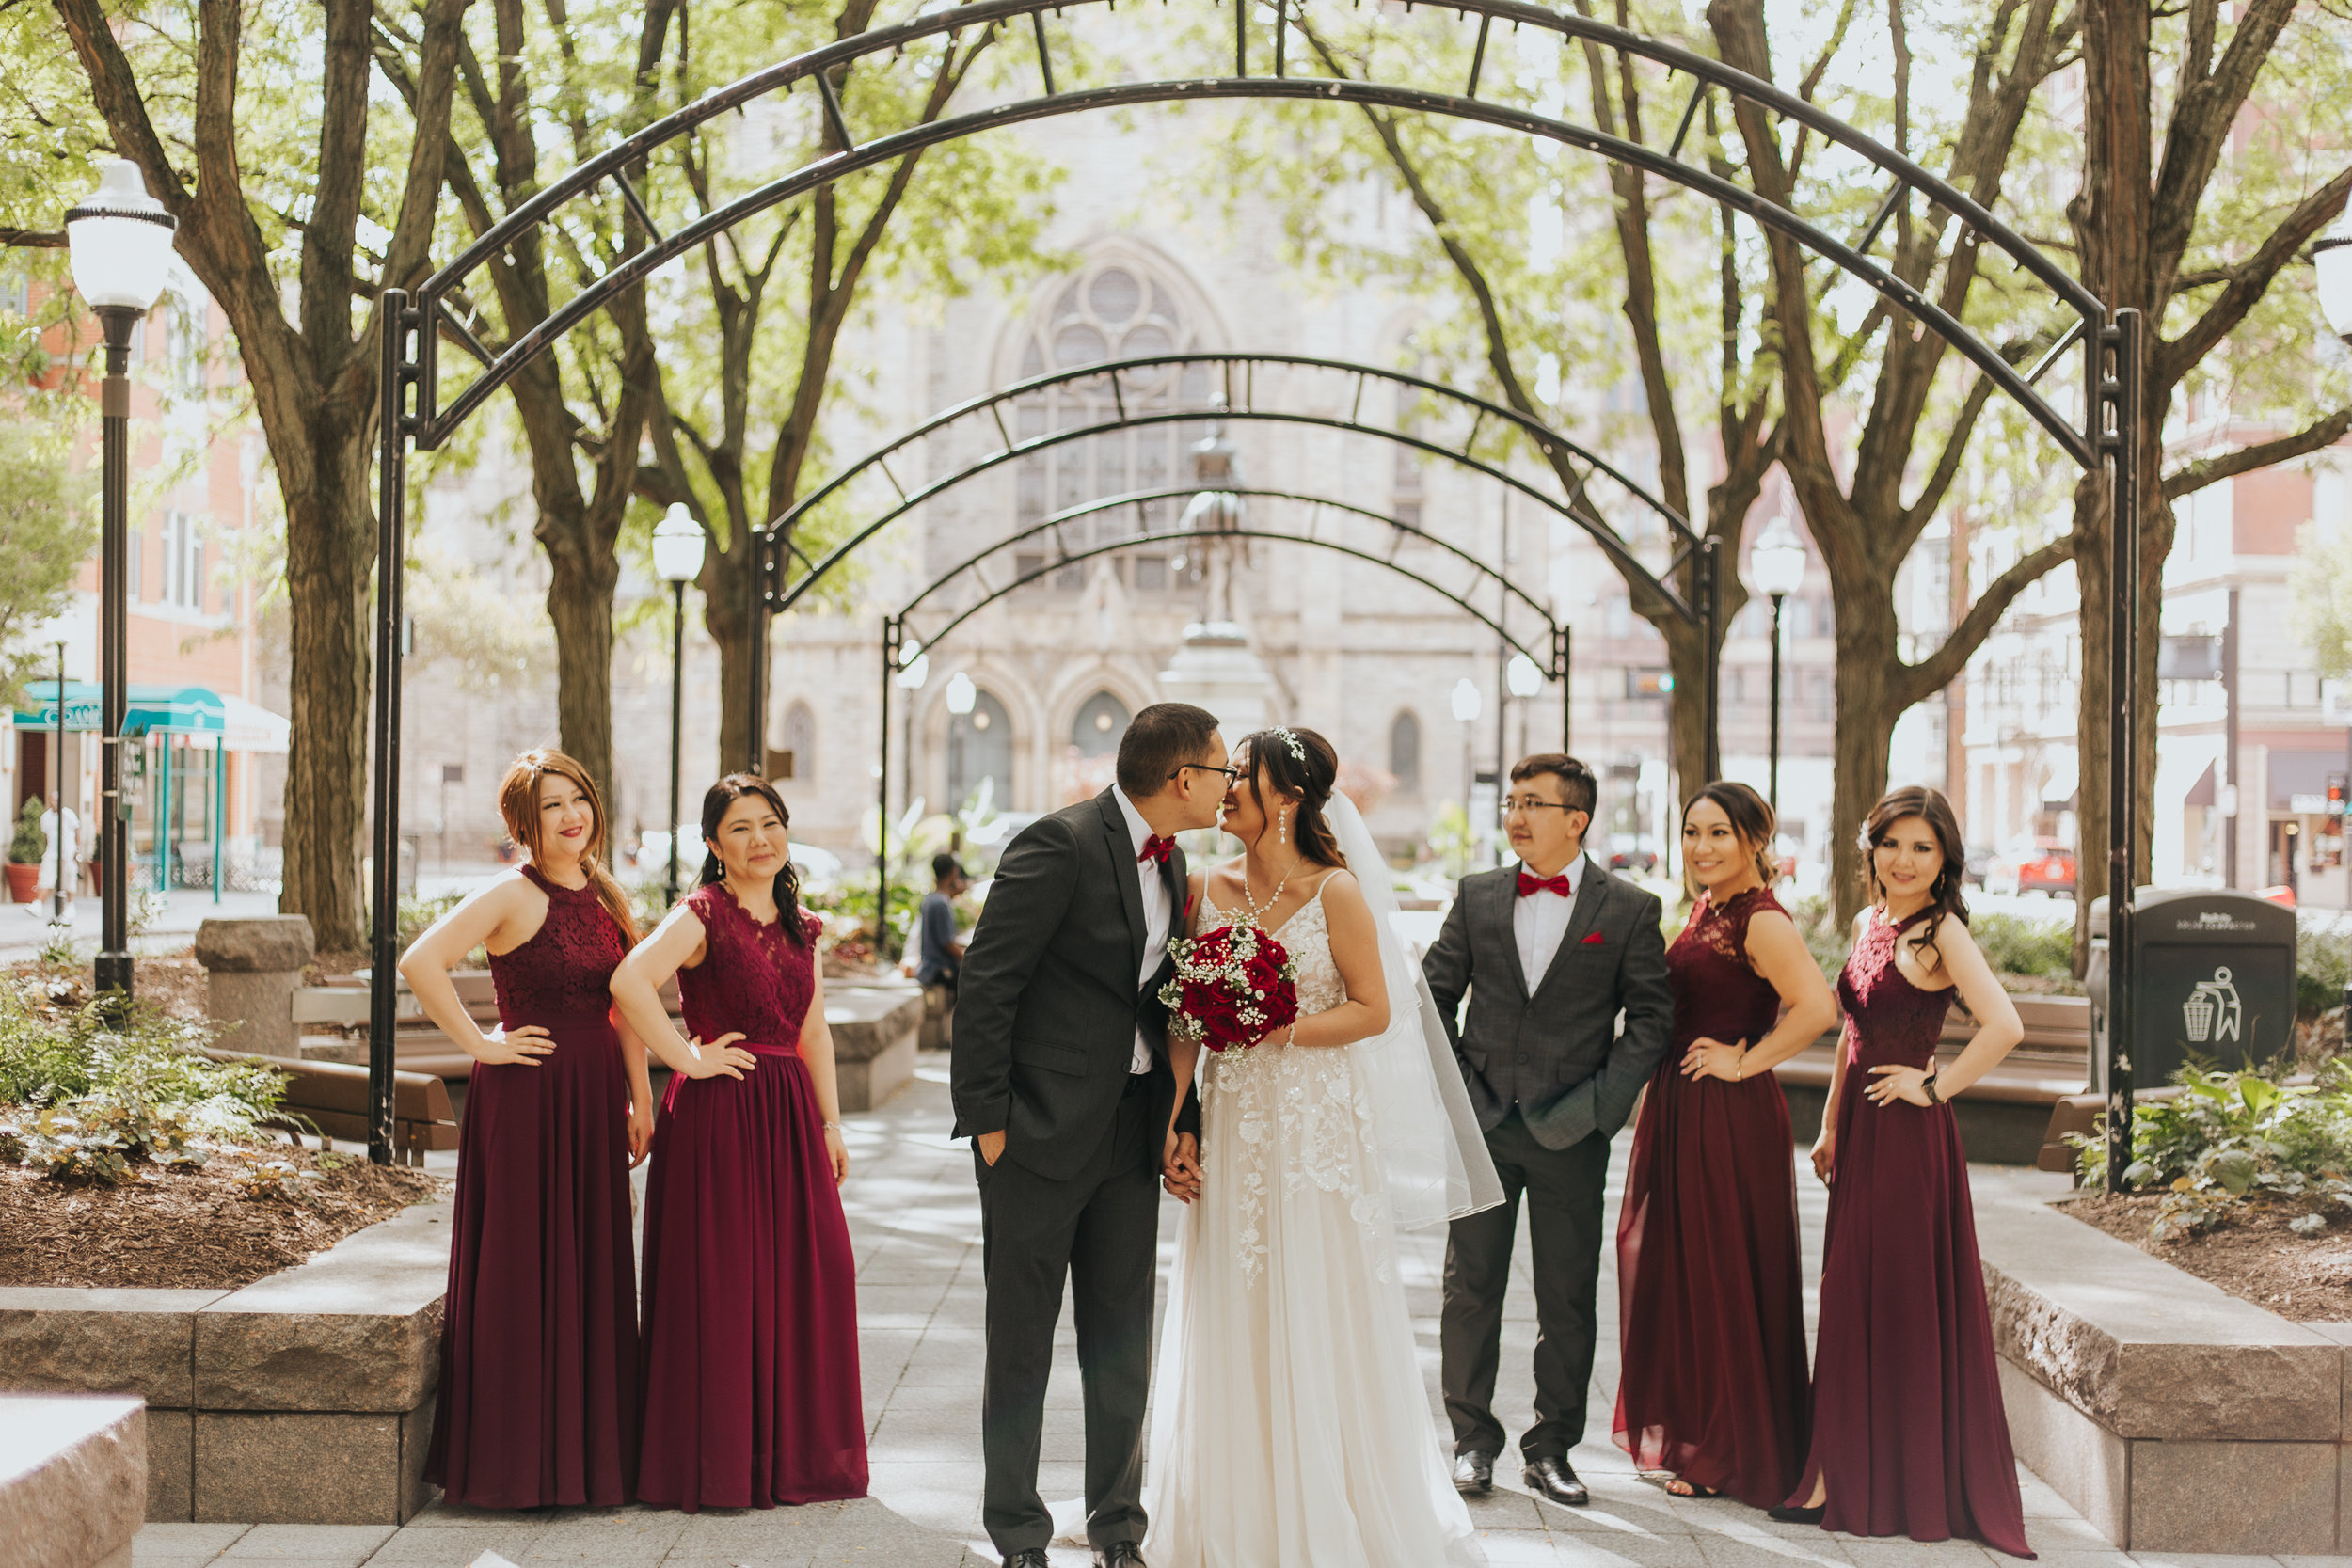 Downtown Cincinnati Bridal Portraits in Smale Park, Over the Rhine, and more By Bare Moments Photography